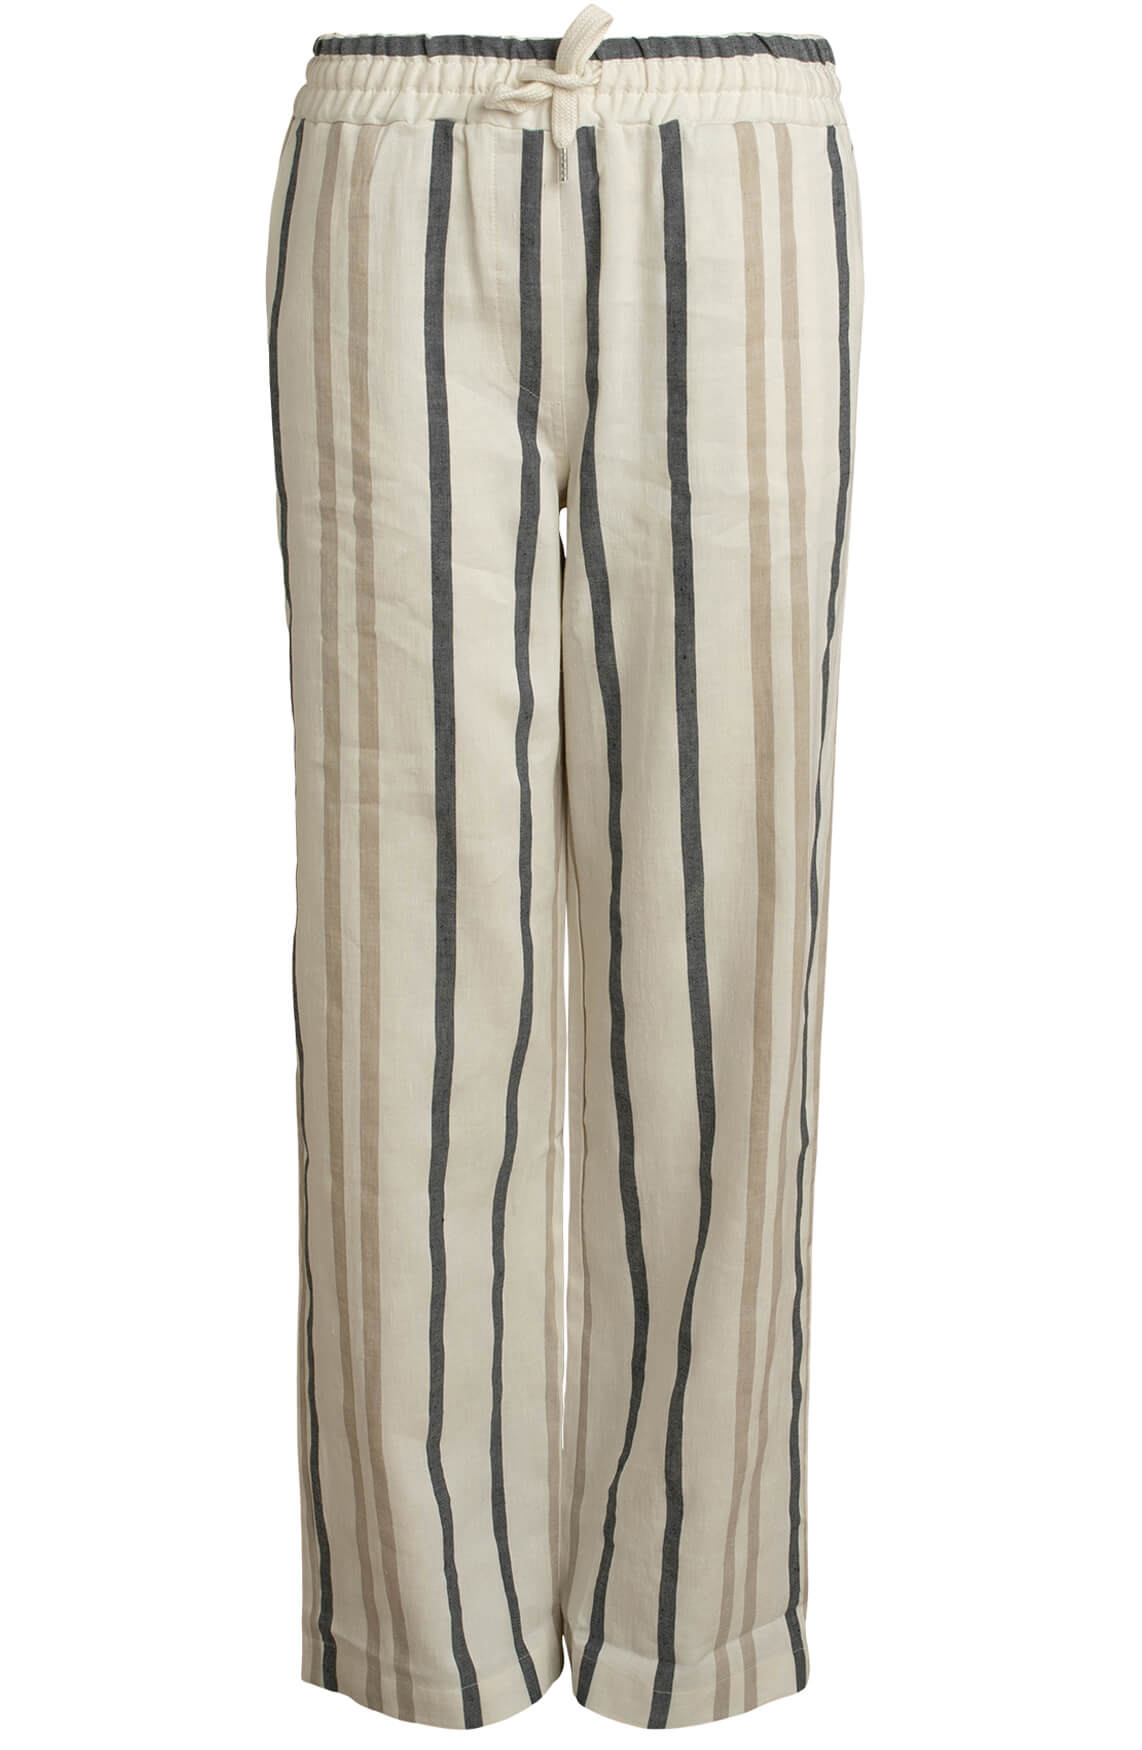 Moscow Dames Percy striped pants Grijs